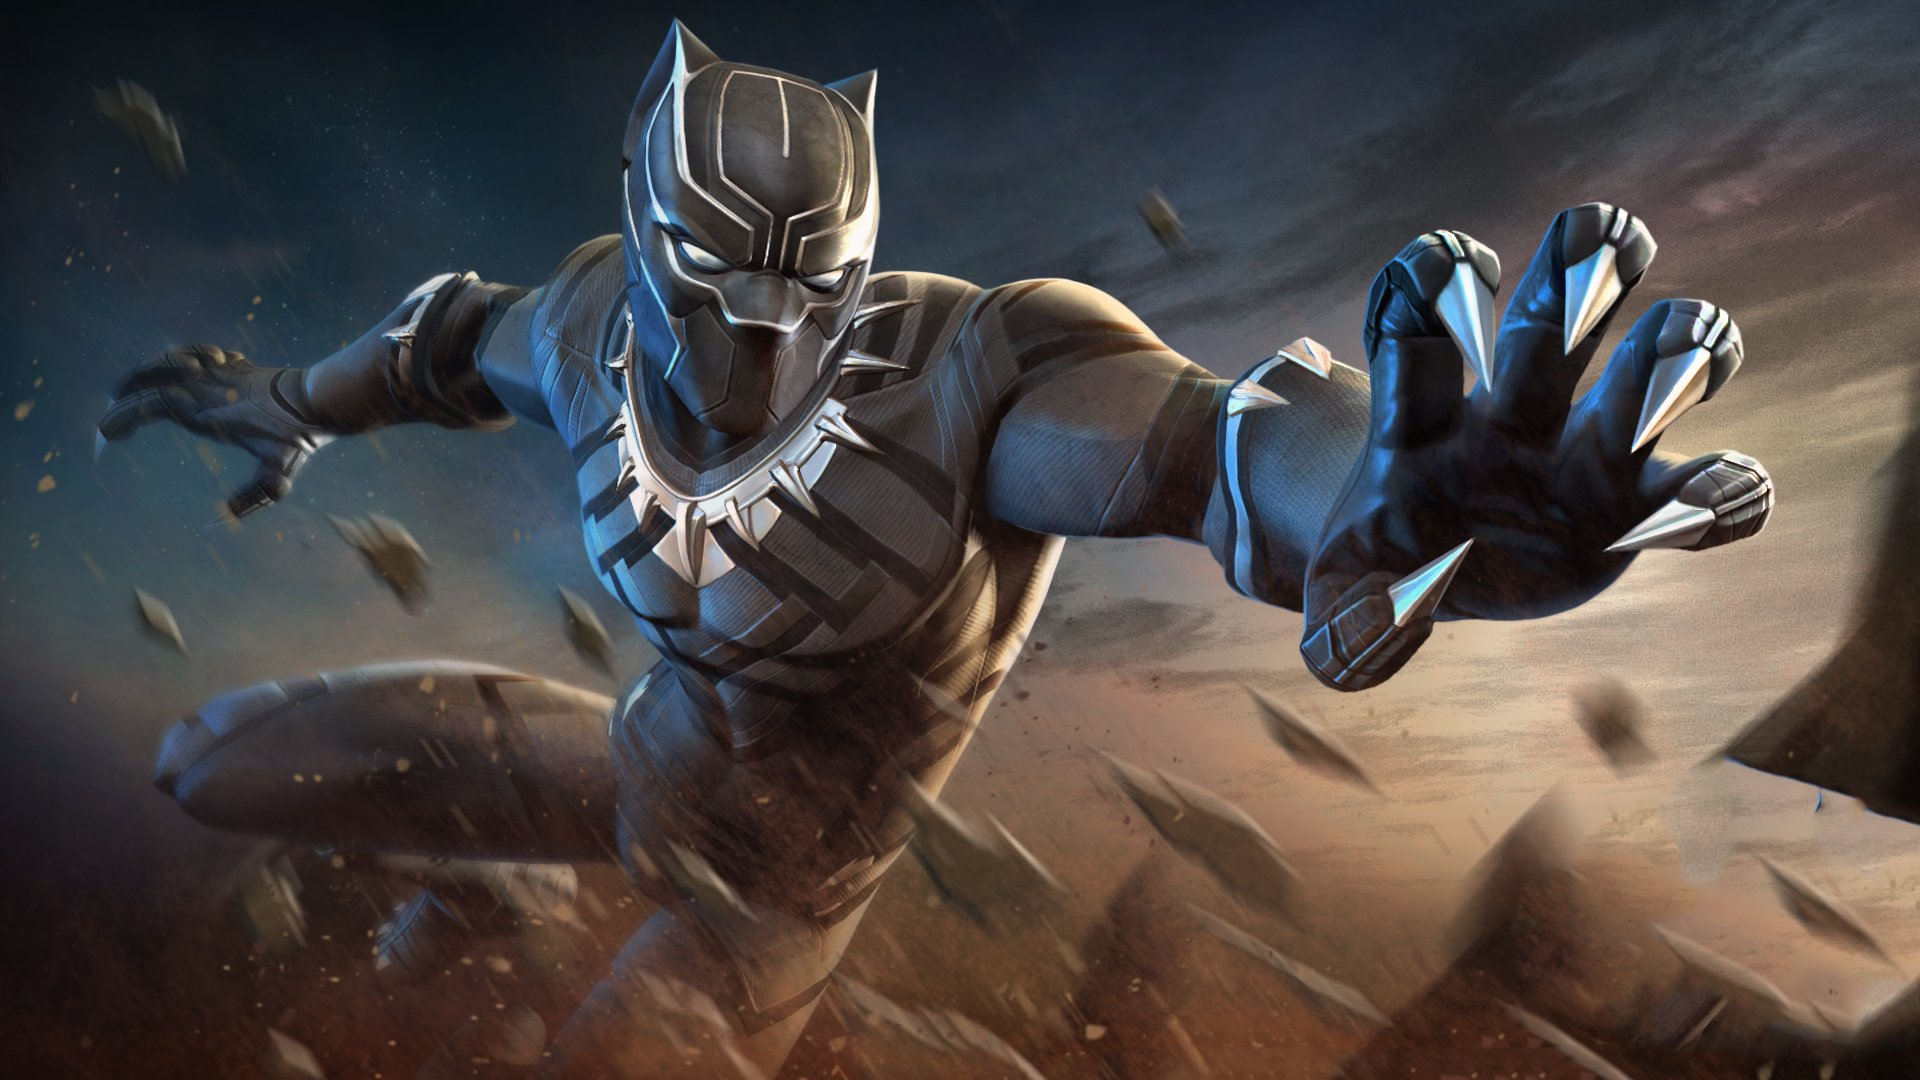 Free Download Black Panther Marvel Contest Of Champions Wallpapers Hd Wallpapers 1920x1080 For Your Desktop Mobile Tablet Explore 24 Black Panther Marvel Mobile Wallpapers Black Panther Marvel Mobile Wallpapers